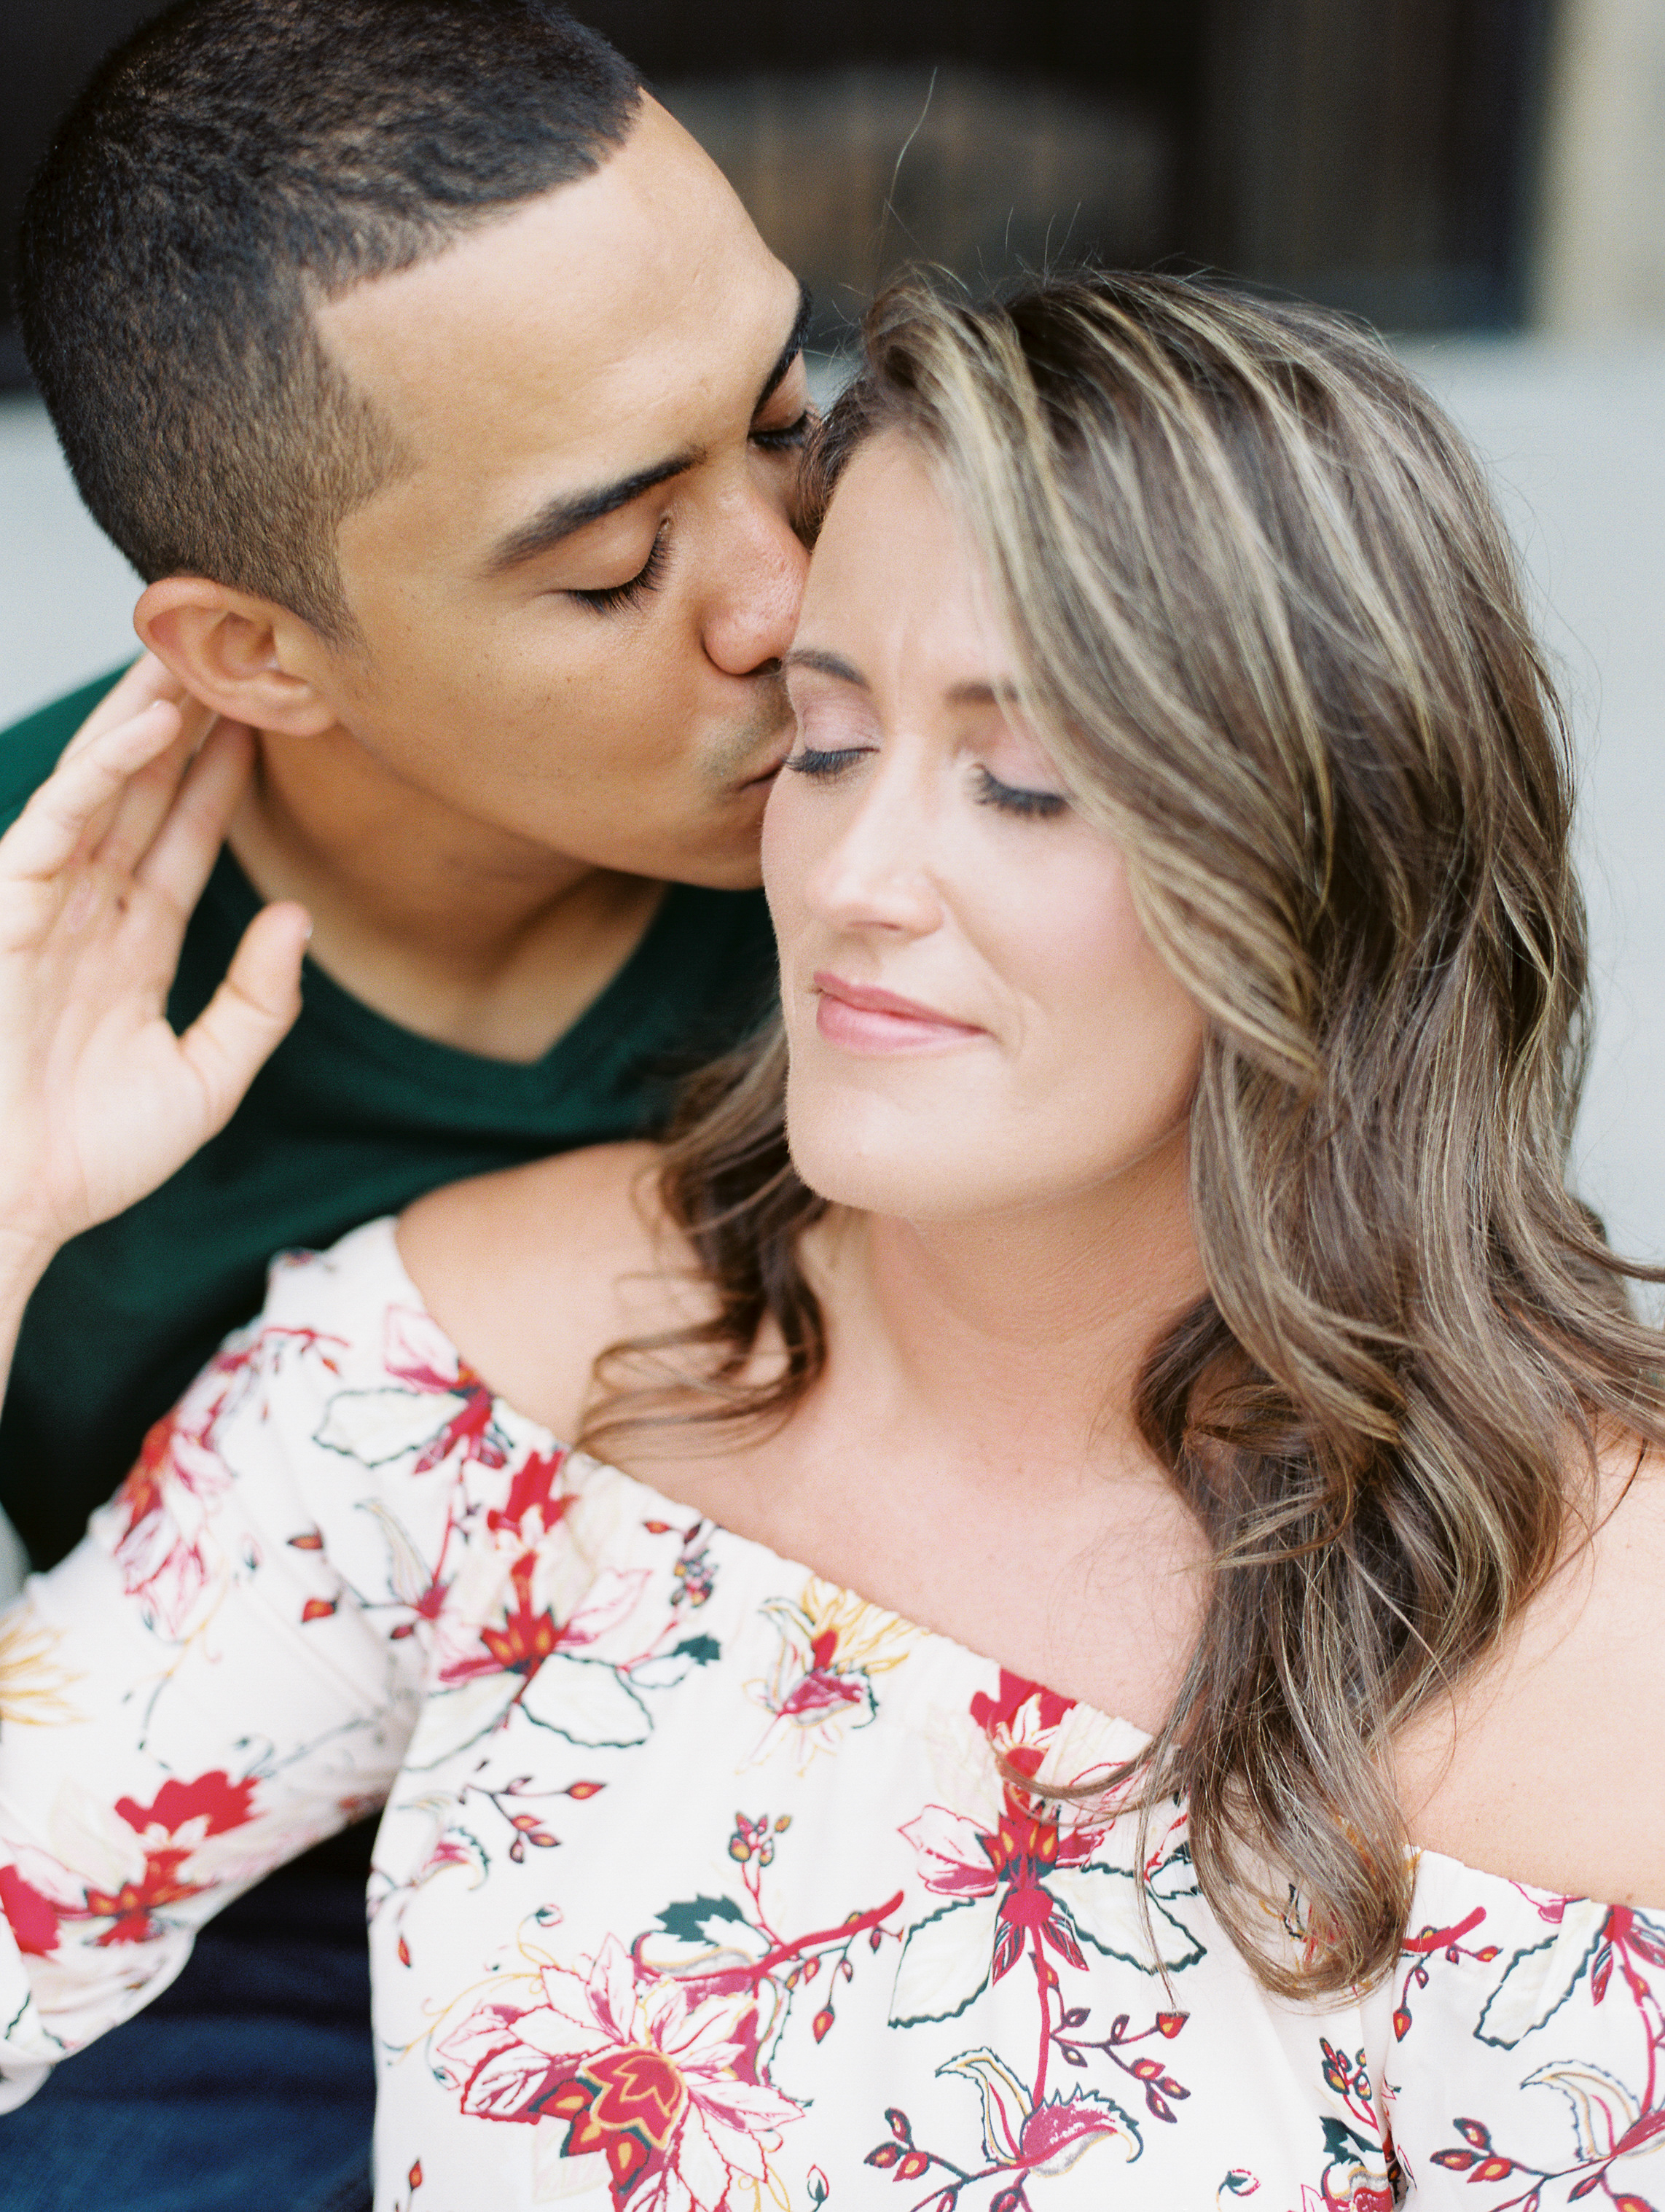 Rachel_Mo_Engagement_Riverwalk_Columbus_Georgia_Fallen_Photography-53.JPG